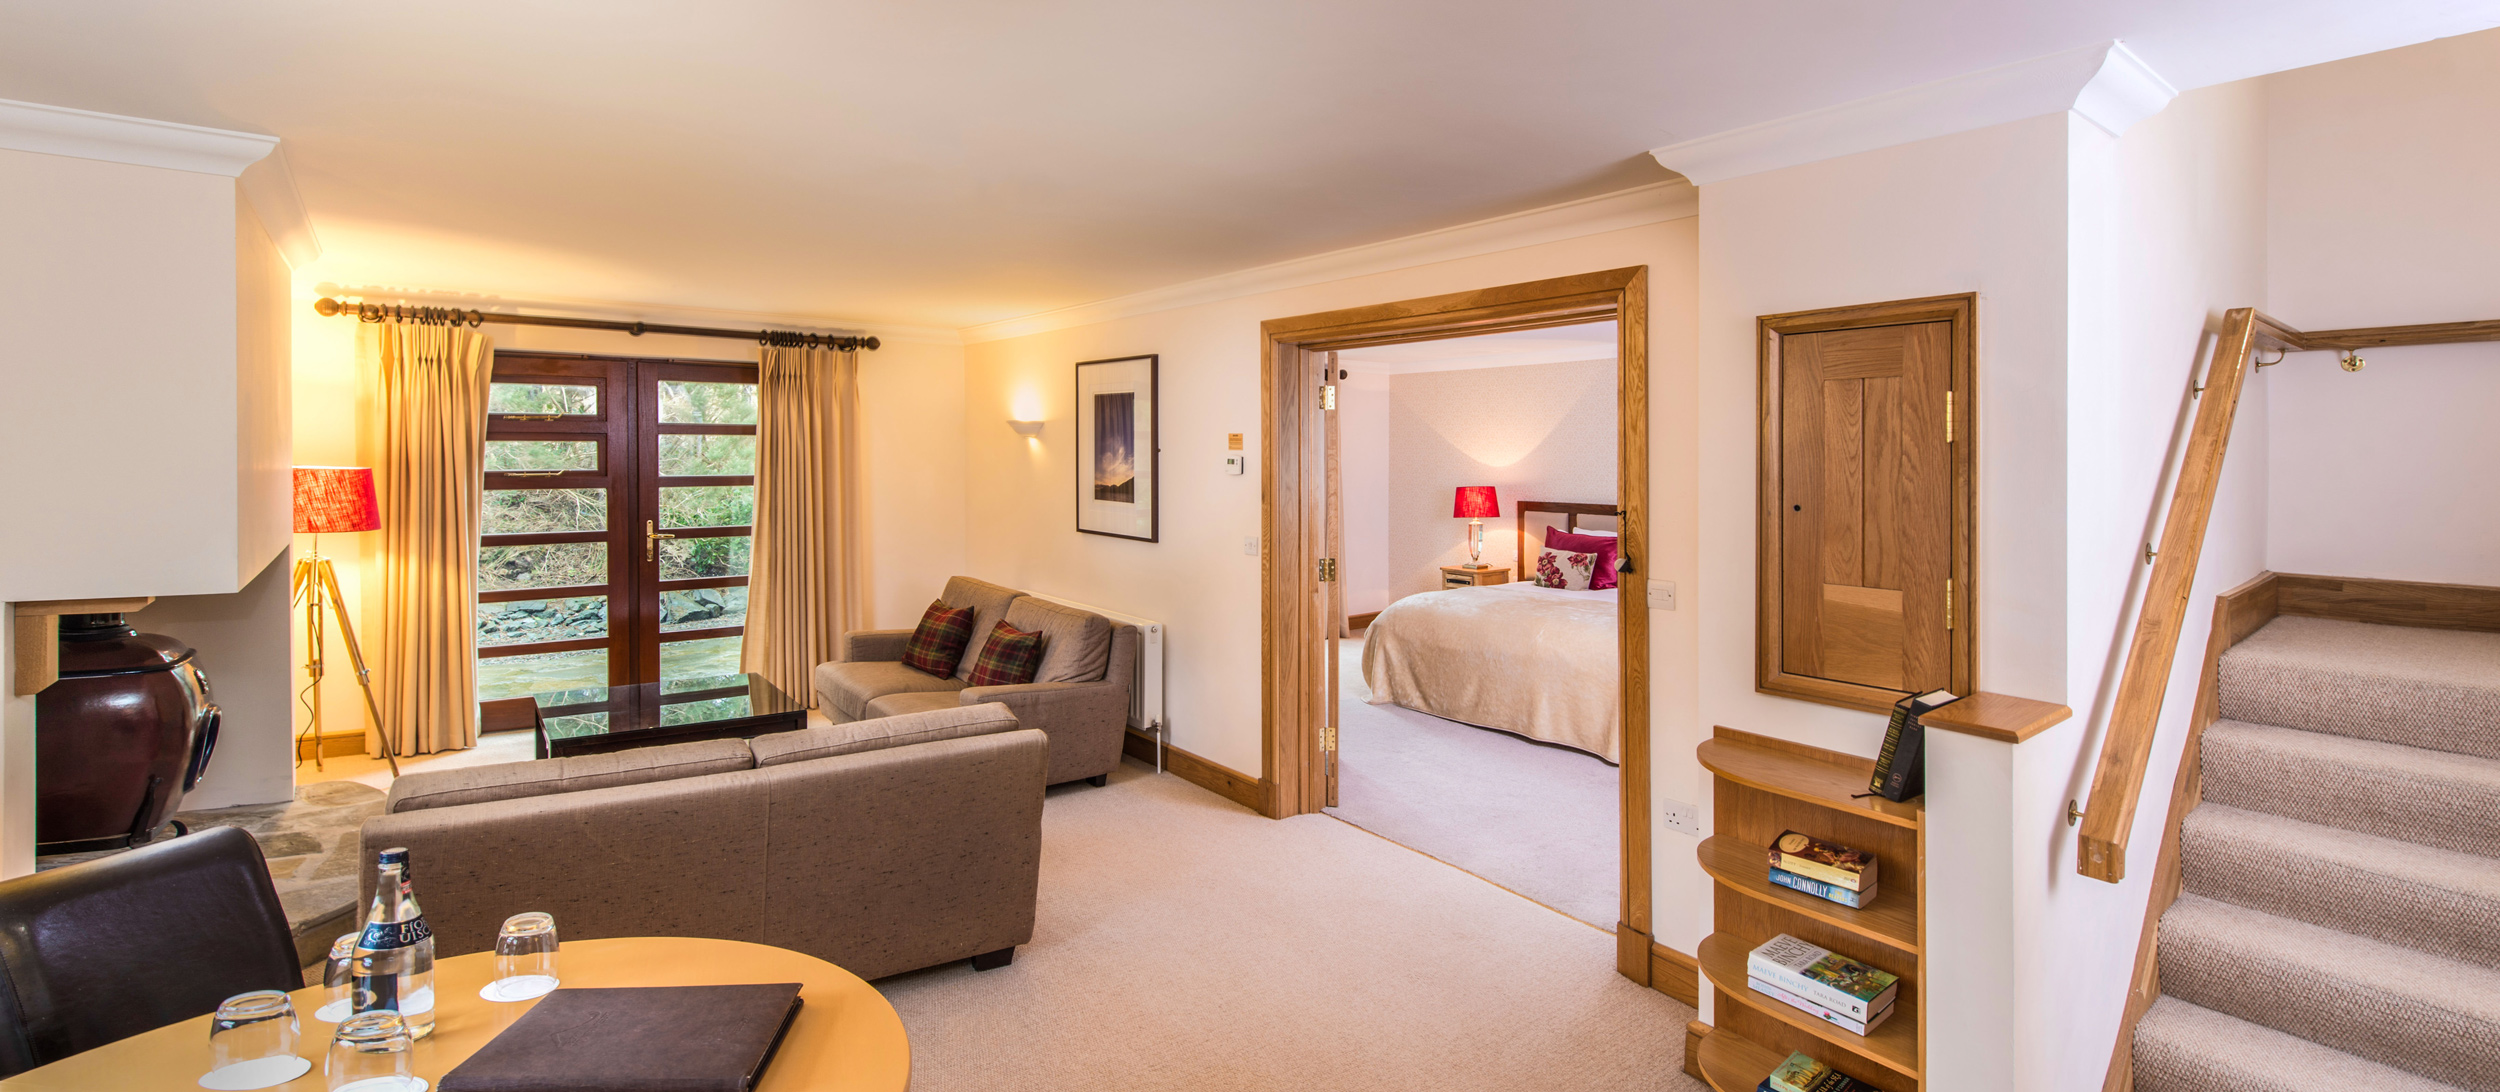 interiour-photographer-Galway-Ireland-Delphi-Resort-Room-11